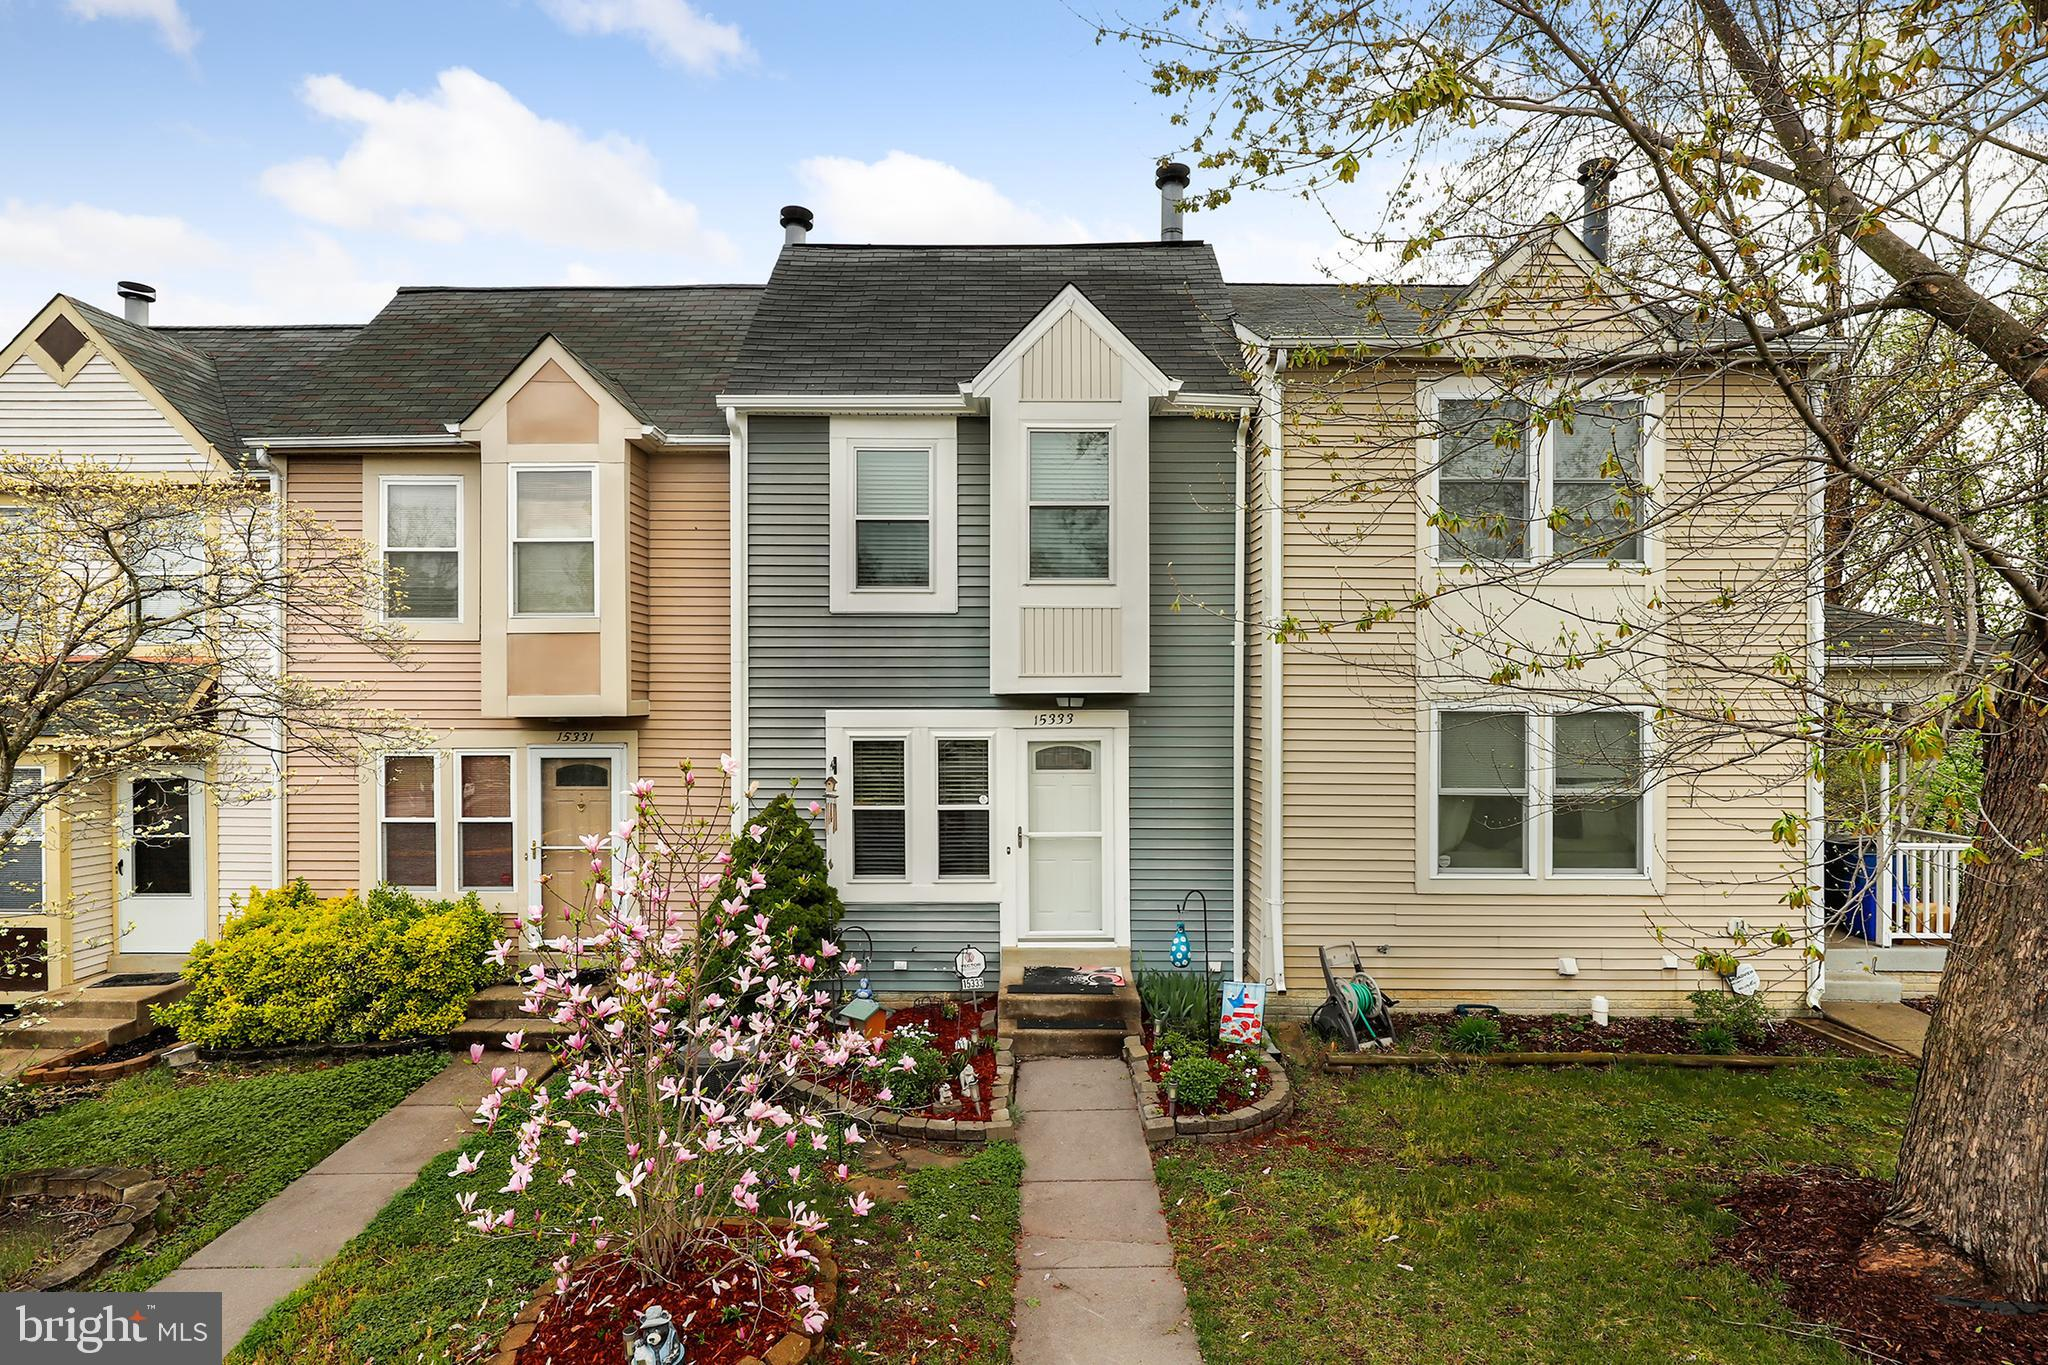 Welcome to this charming townhome close to parks, trails, river and Neabsco creek boardwalk. This beautiful home has FRESH paint, NEW windows and NEW carpet throughout! The home also features two bedrooms, two full bathrooms and a half bath. Stay warm on cold winter days by the fireplace in the living room. Enjoy your meals in the dining area beside the kitchen which features stainless steel appliances and gleaming countertops. Walkout basement could be your recreation area and leads you to the patio in the backyard. Enjoy the weather on the NEW deck on warm summer days. Don't miss this opportunity to own a home close to Rippon Landing Park, Potomac Mills Mall, commuter lots and major highways!